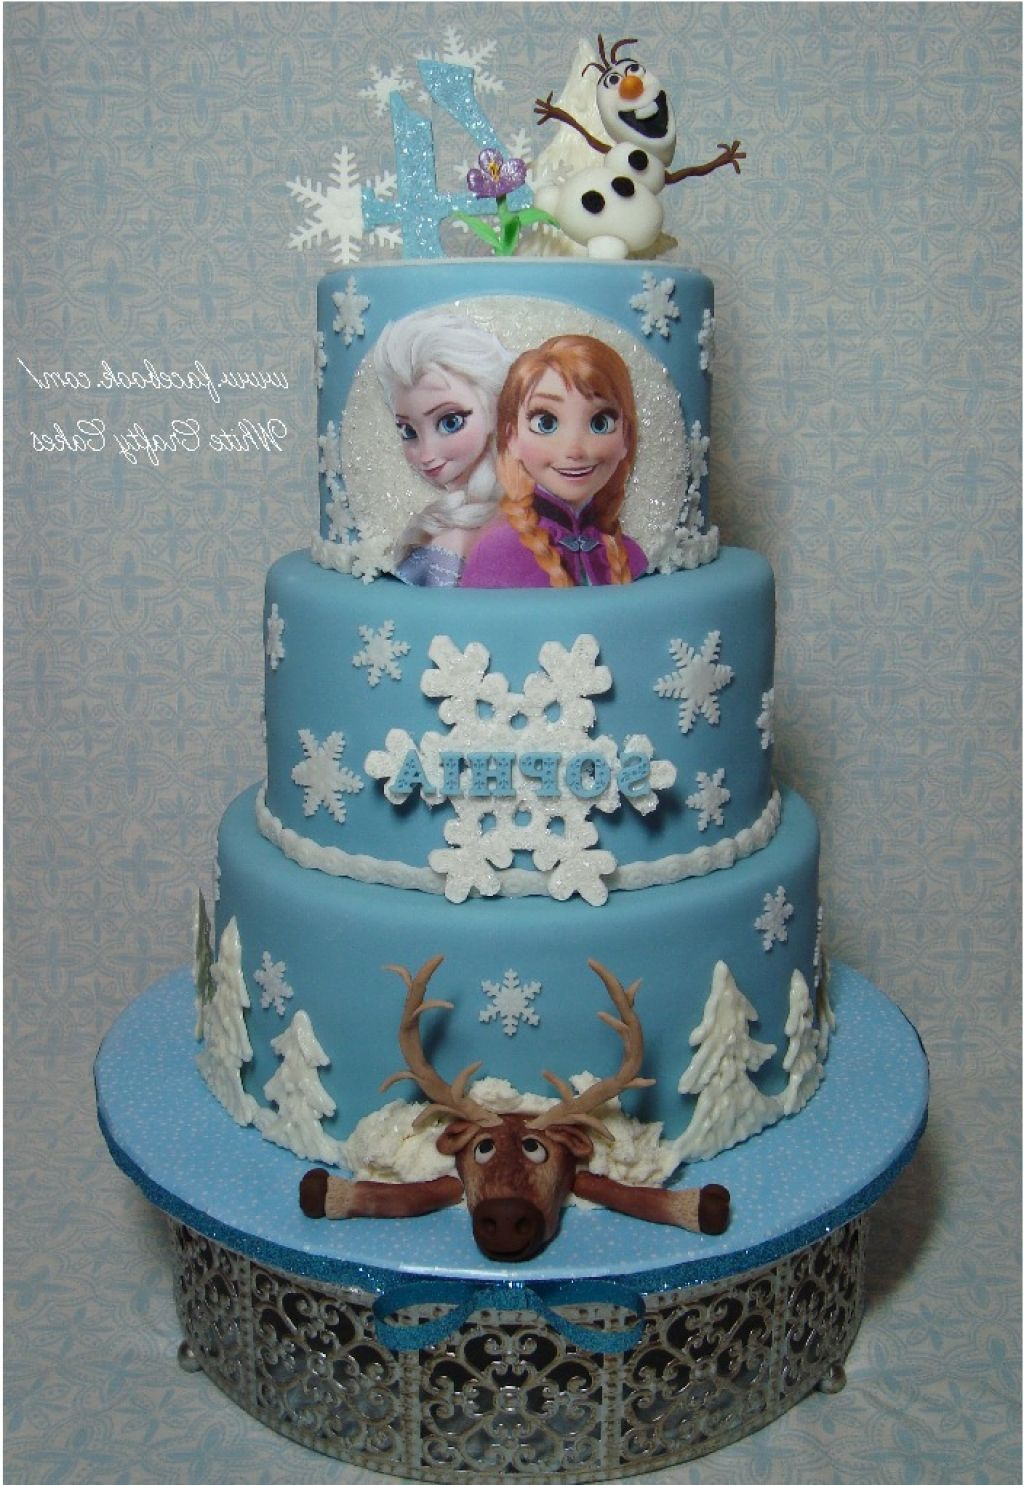 Edible Cake Pictures Frozen : Edible Frozen Princess Fondant Cake Topper/ Cake Topper ...